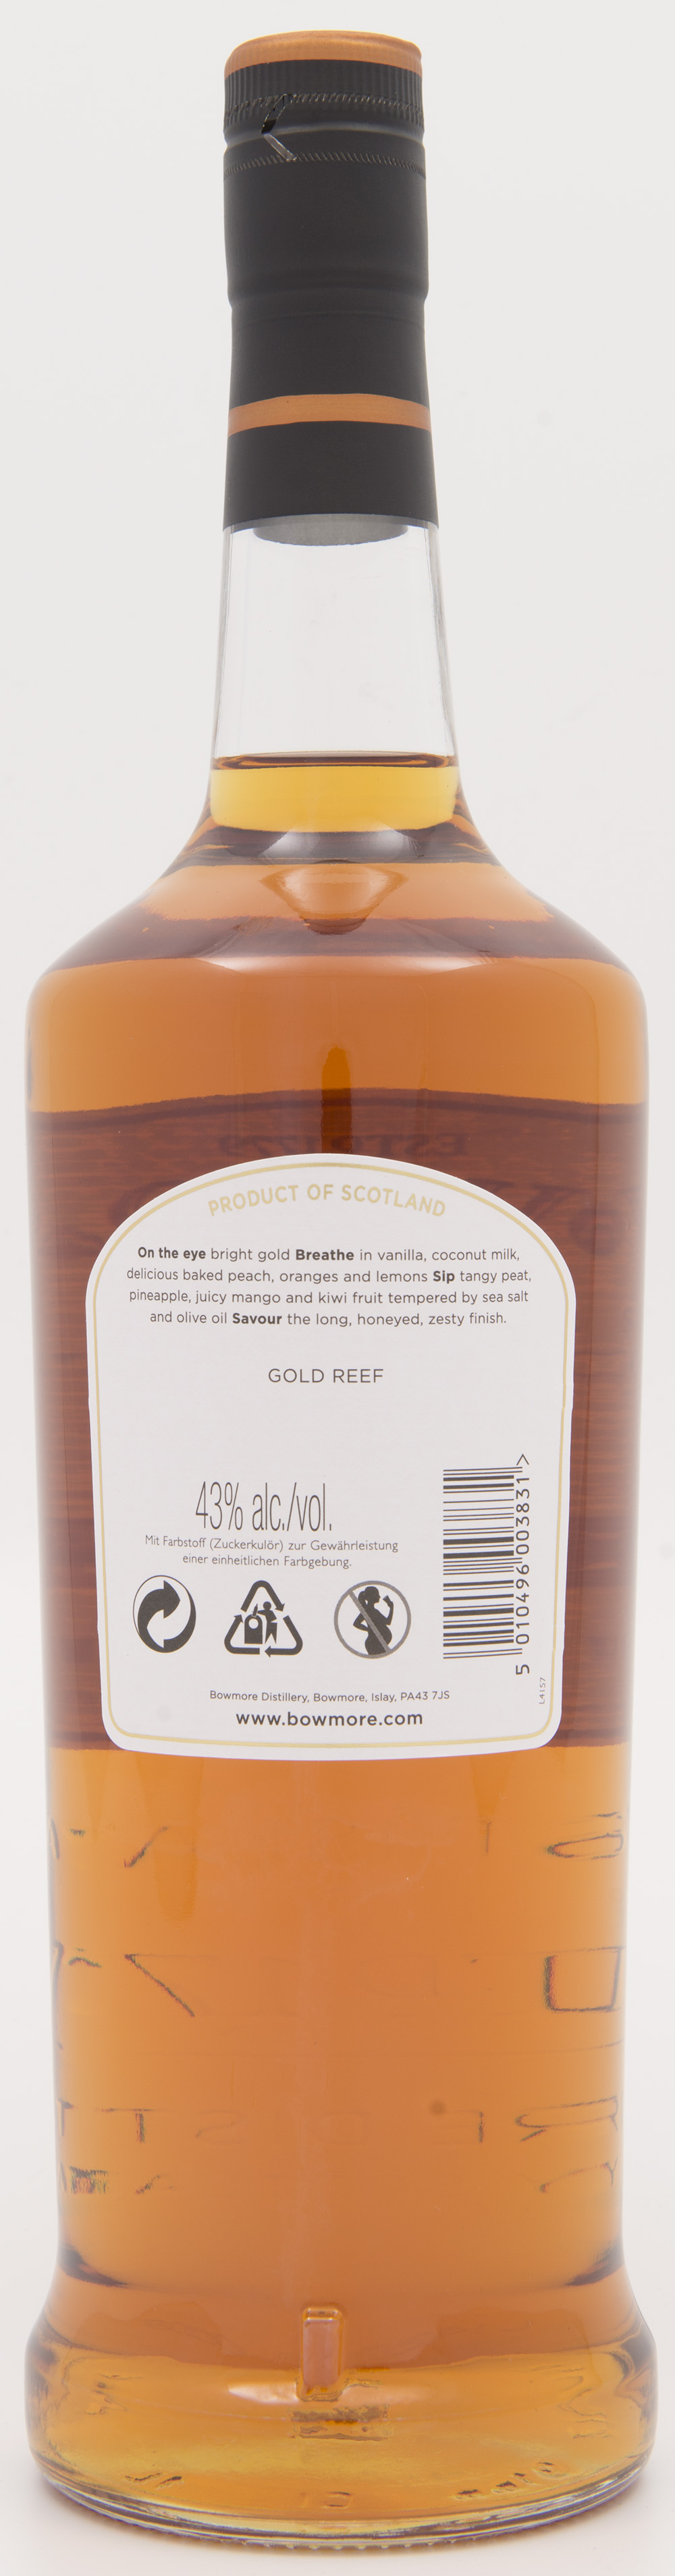 Billede: DSC_3855 Bowmore Gold Reef - bottle back.jpg